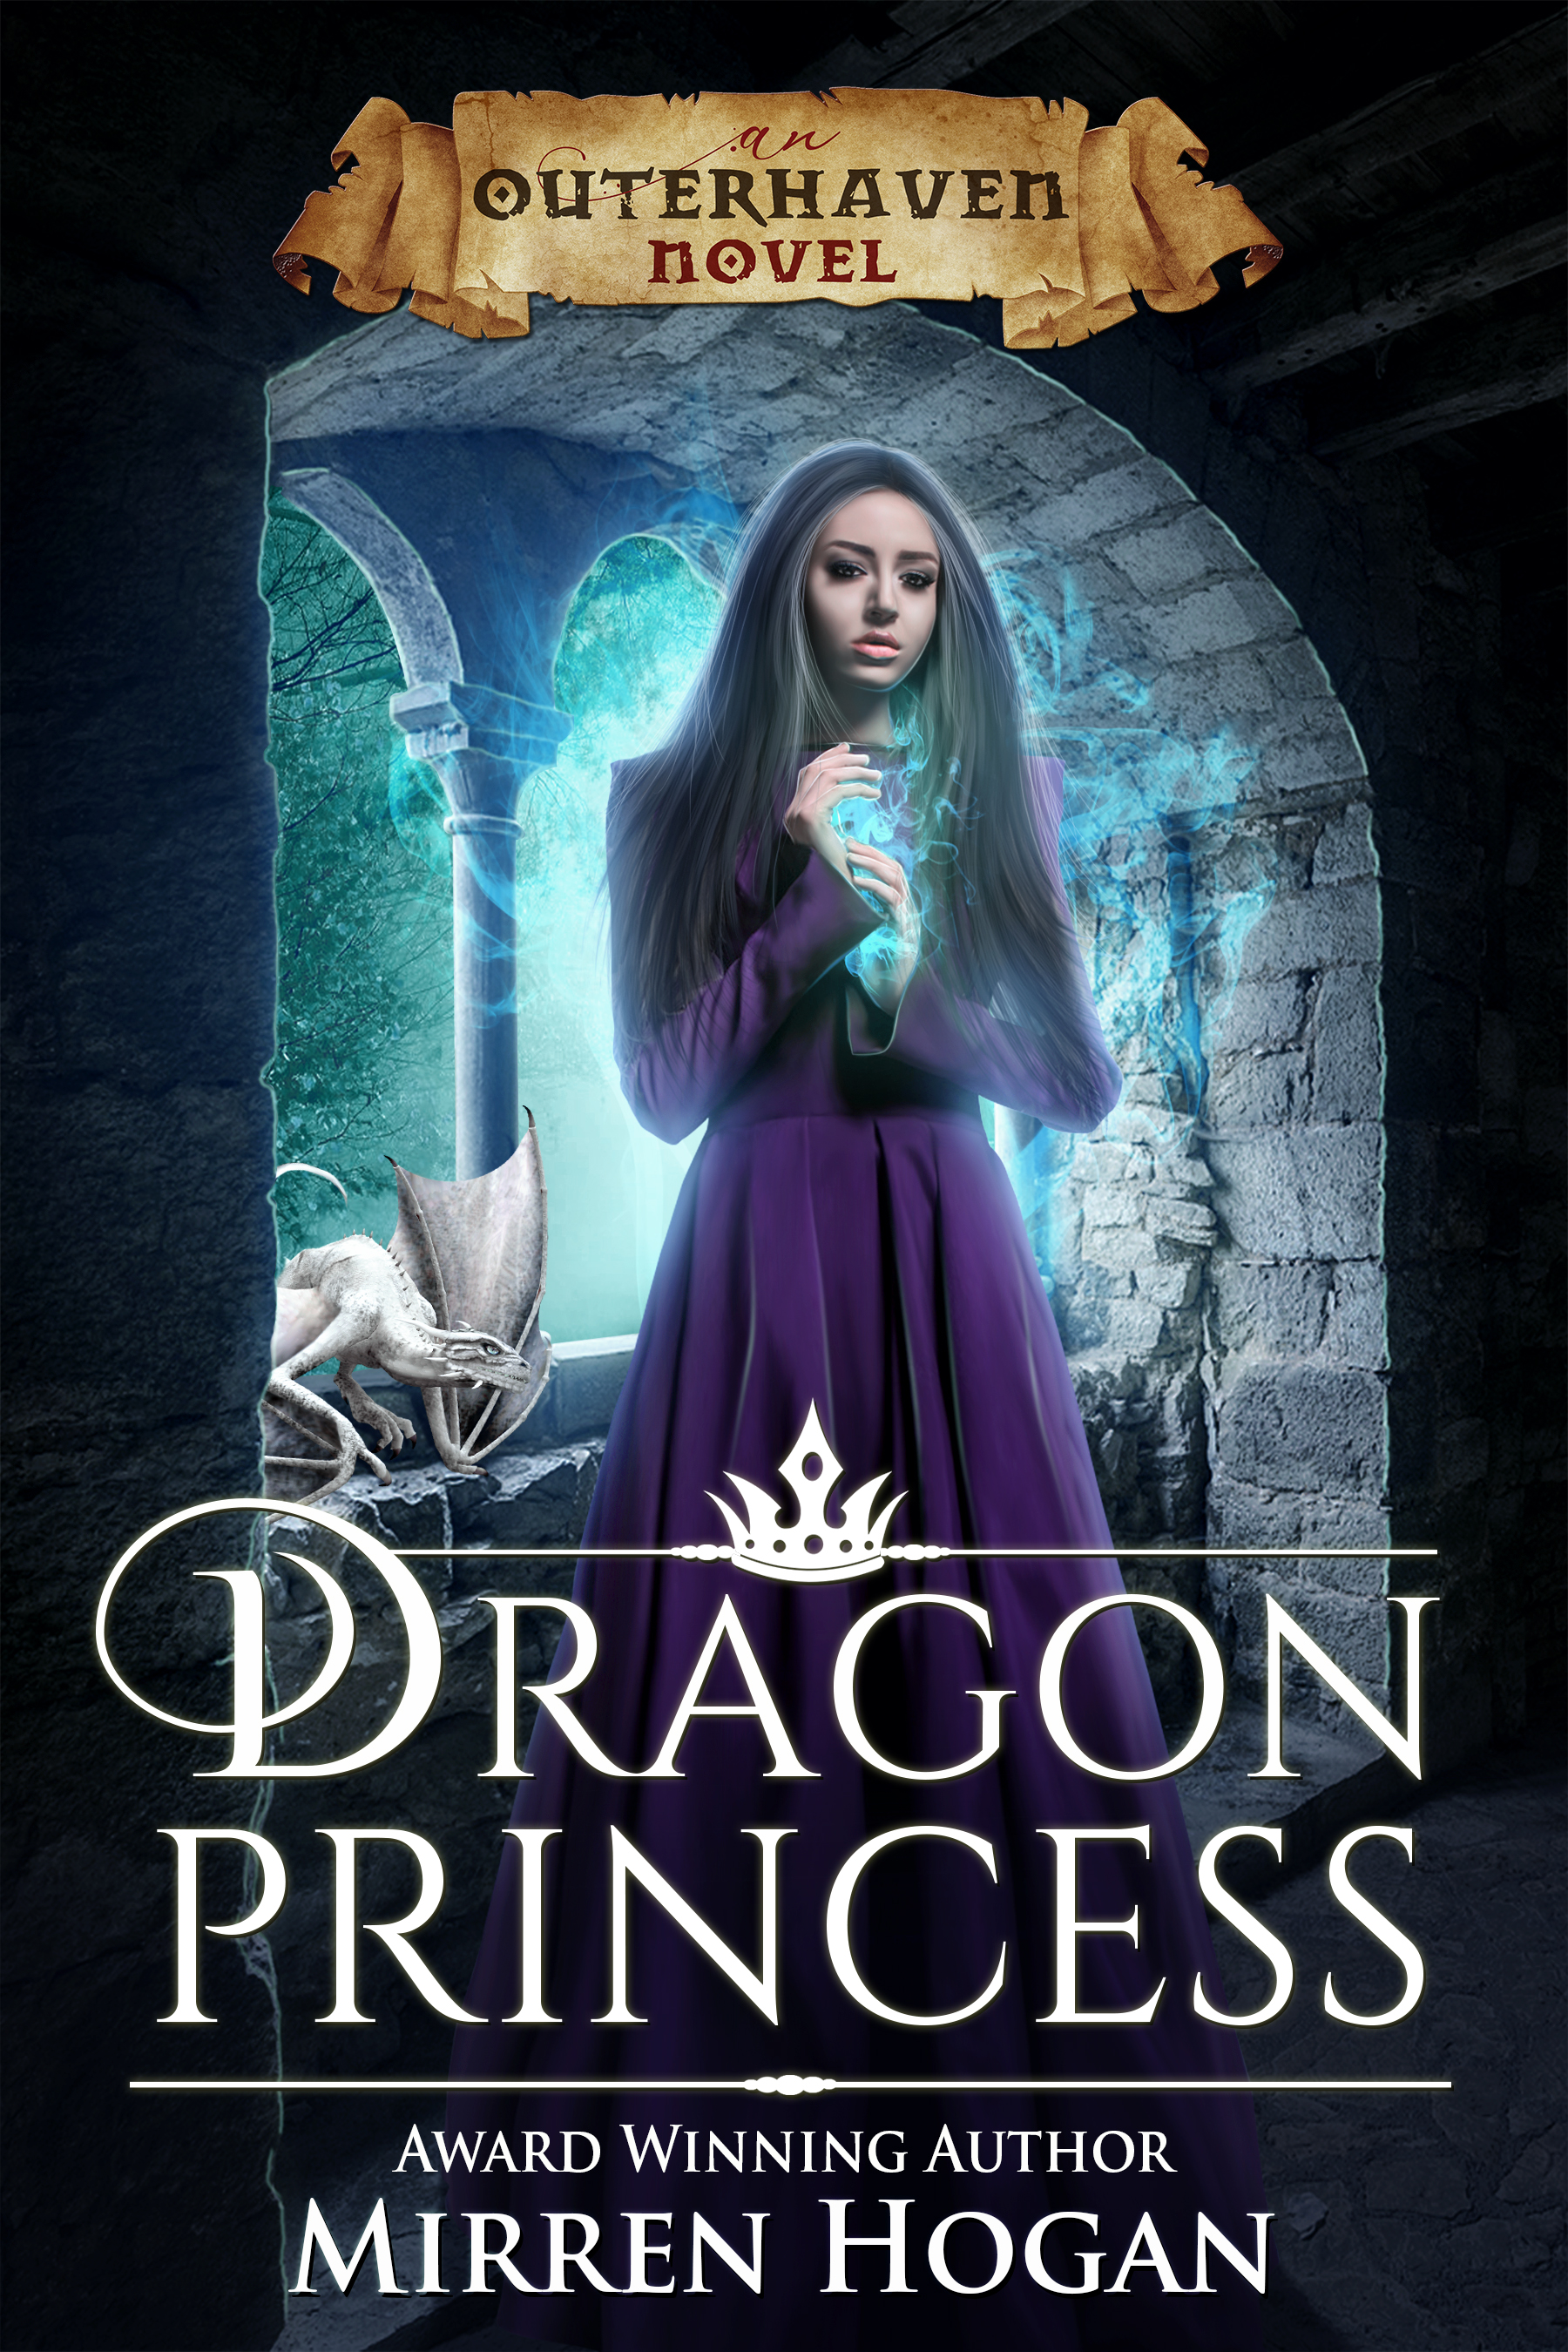 Dragon Princess Mirren Hogan